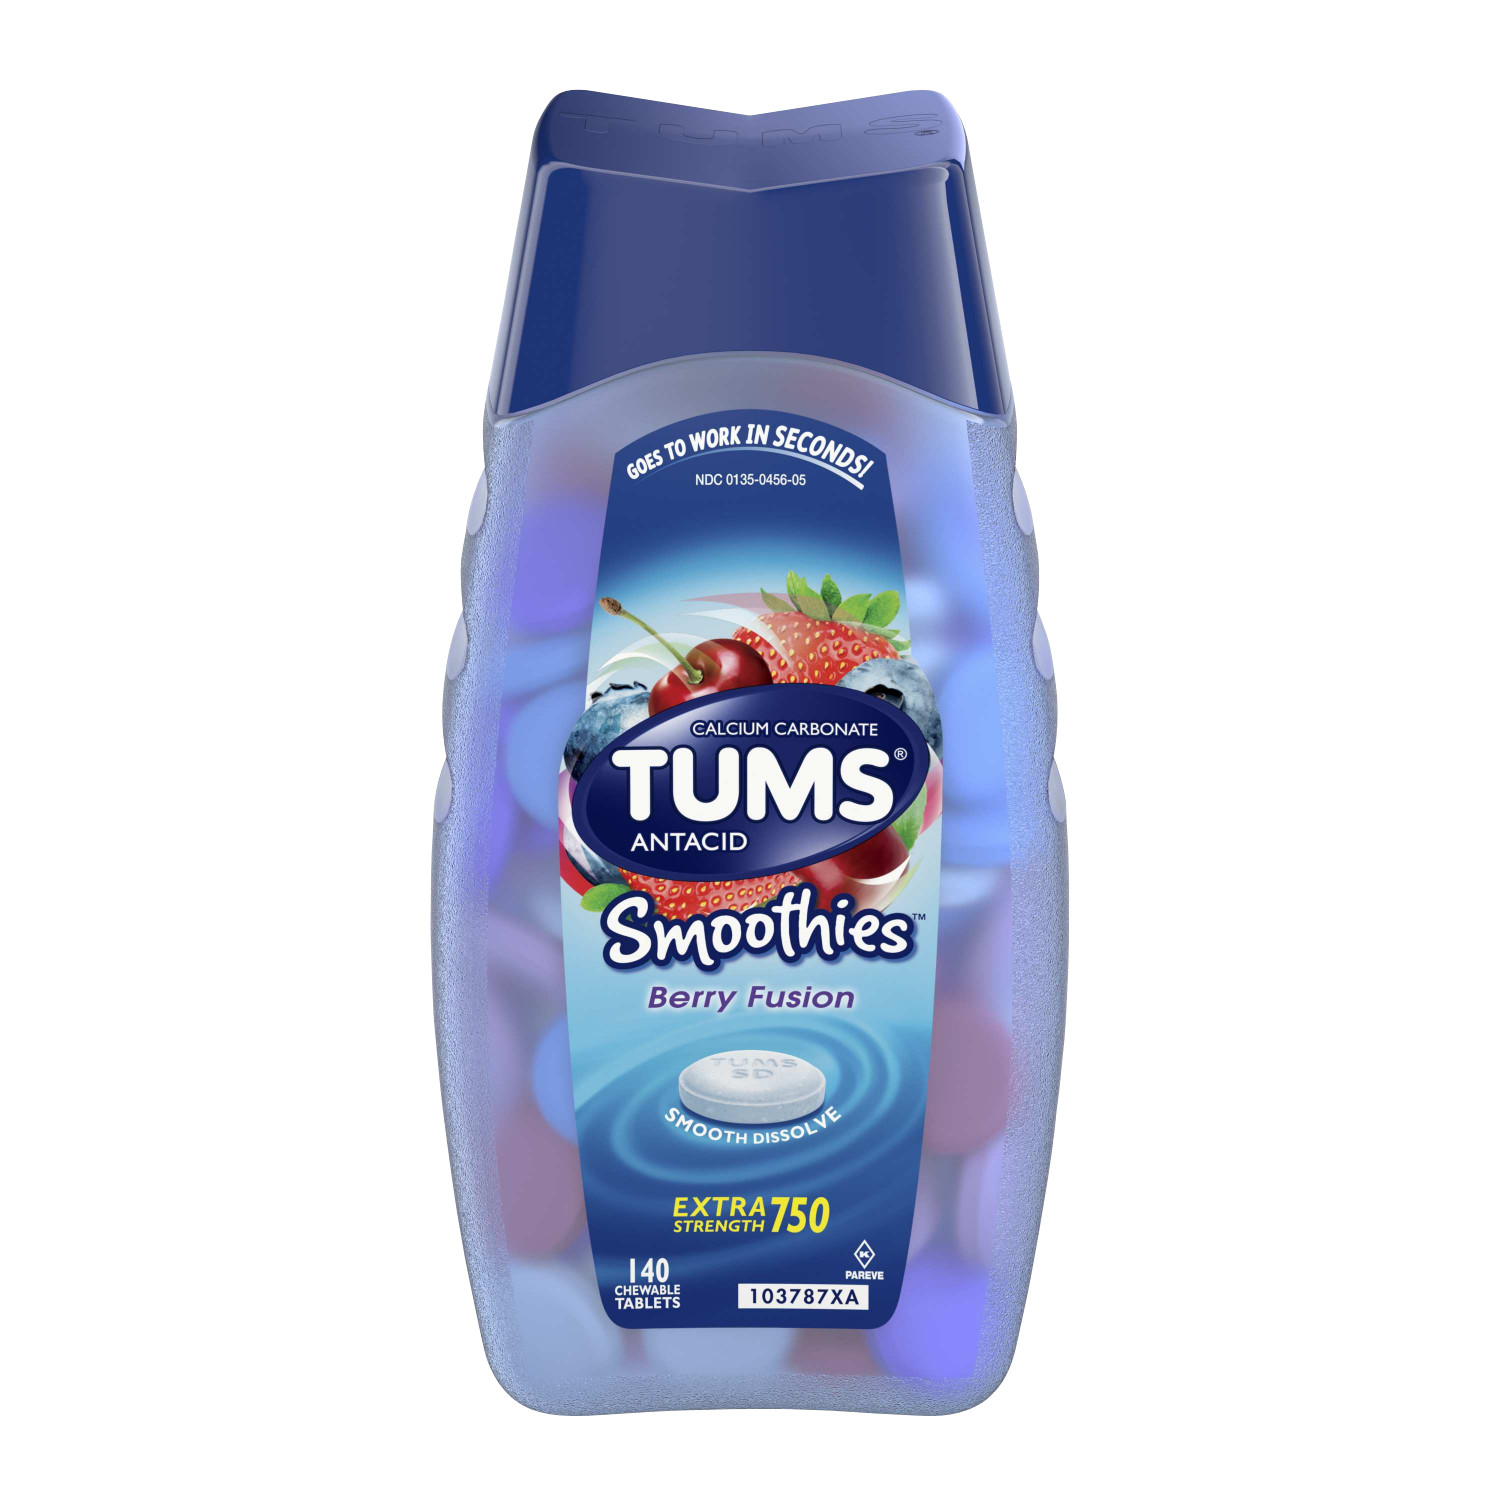 TUMS Smoothies Berry Fusion Extra Strength Antacid Chewable Tablets for Heartburn Relief, 140 Tablets